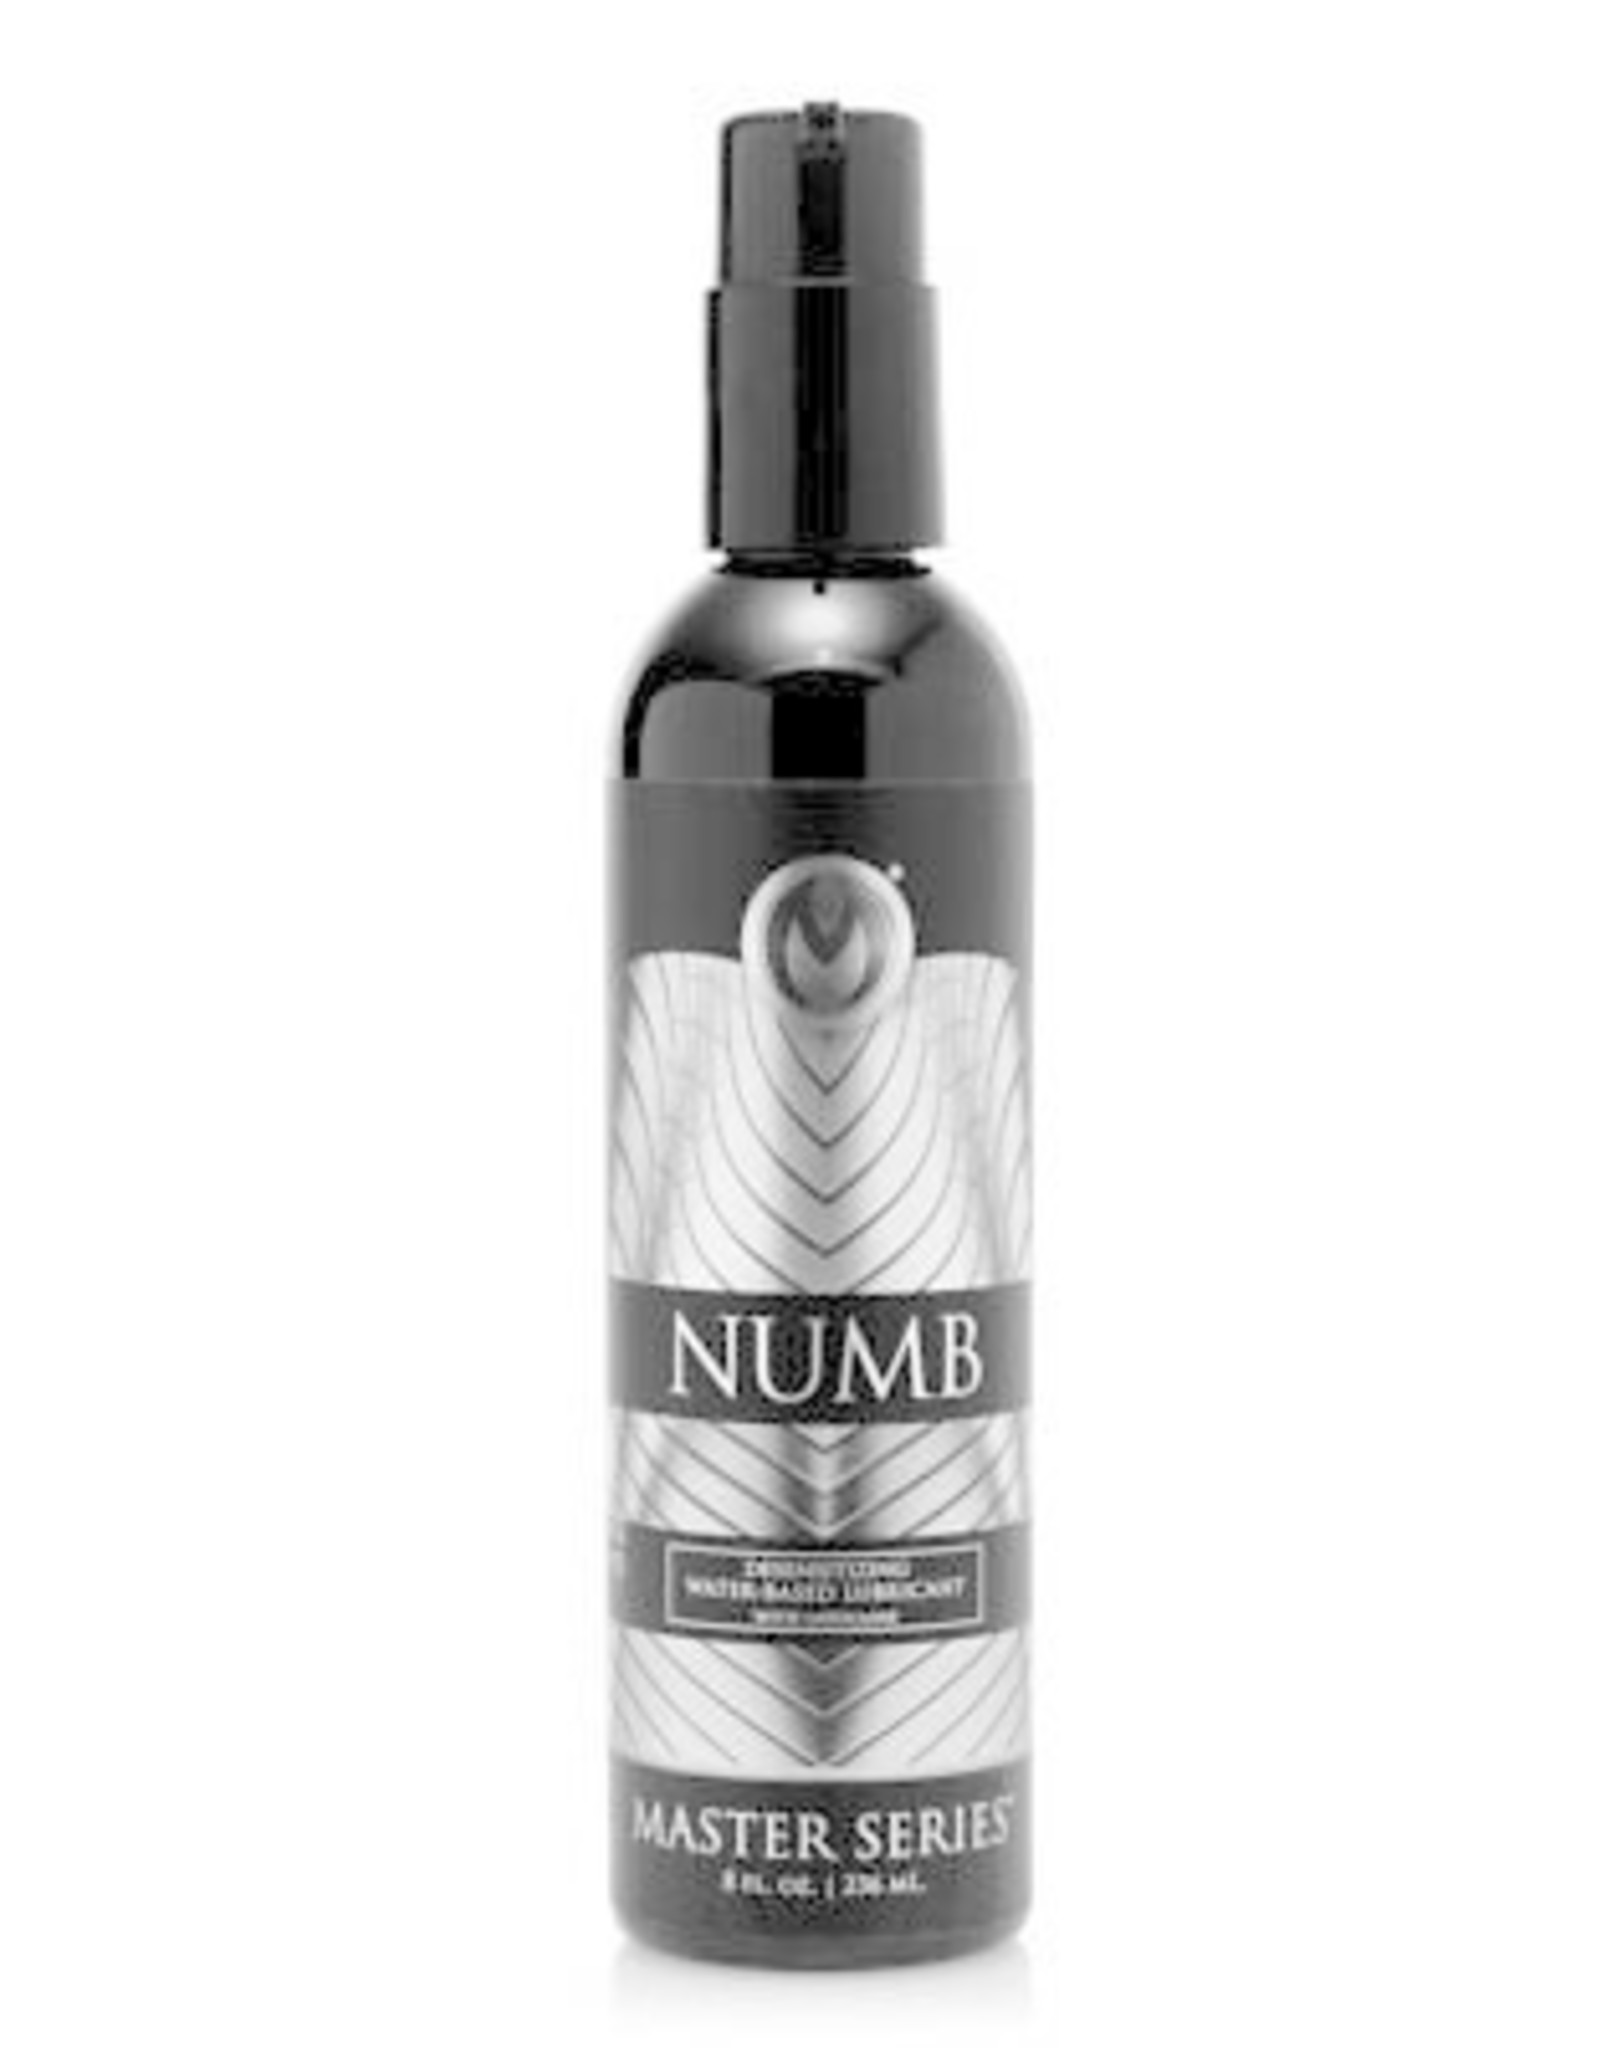 MASTER SERIES MASTER SERIES - NUMB DESENSITIZING WATER BASED LUBRICANT WITH LIDOCAINE 8 OZ